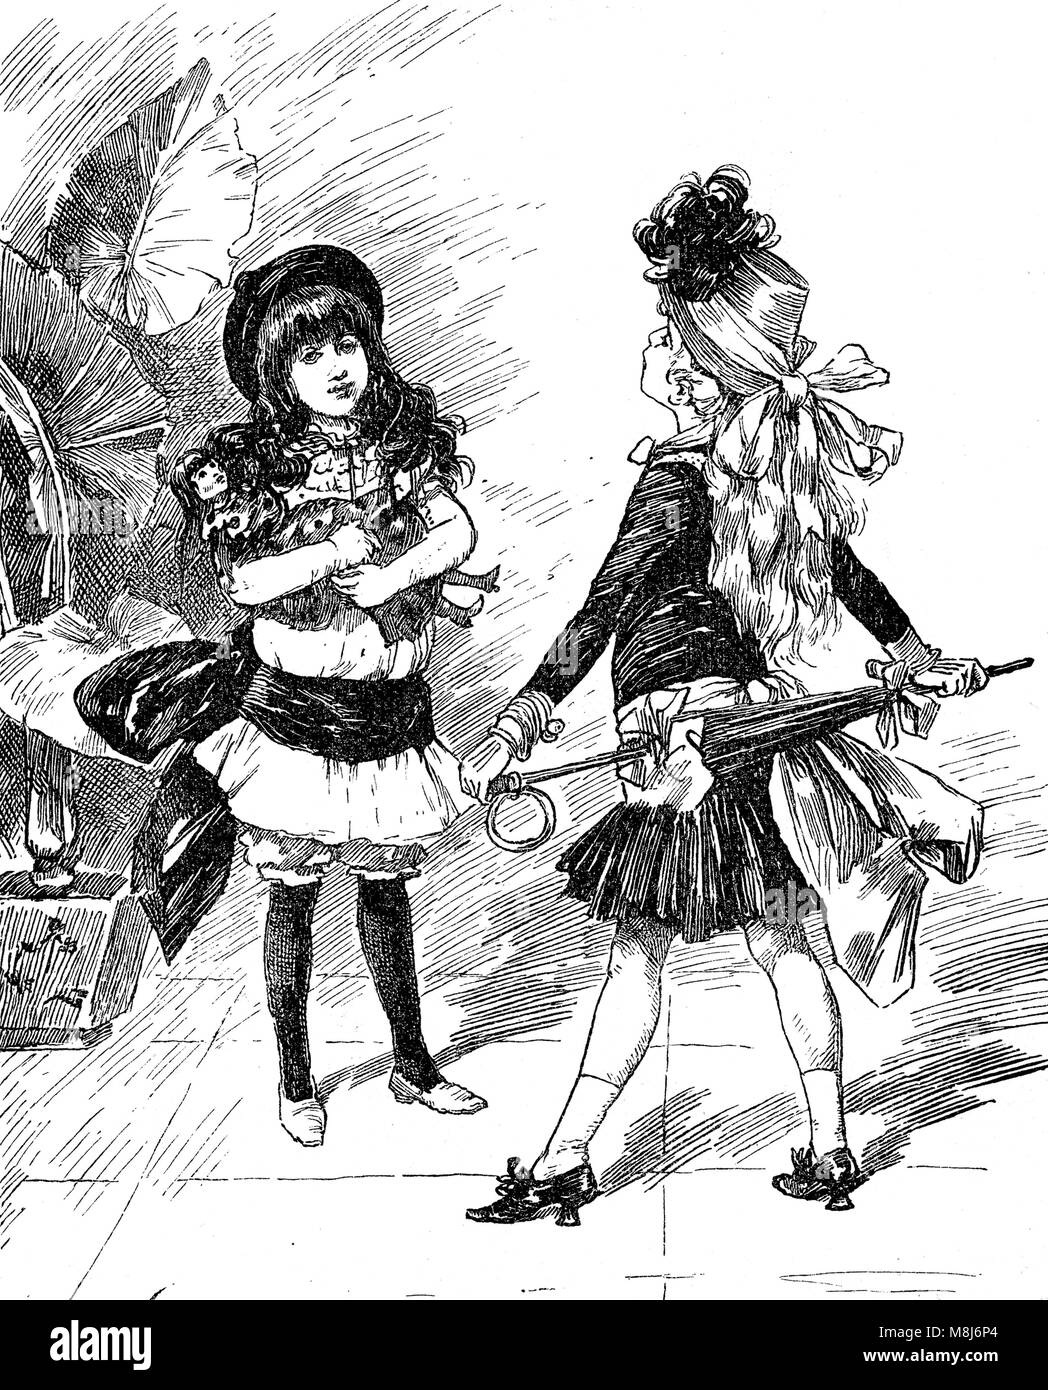 Vintage caricatures and fun: fashionable young girls confronting each other with fancy outfits - Stock Image